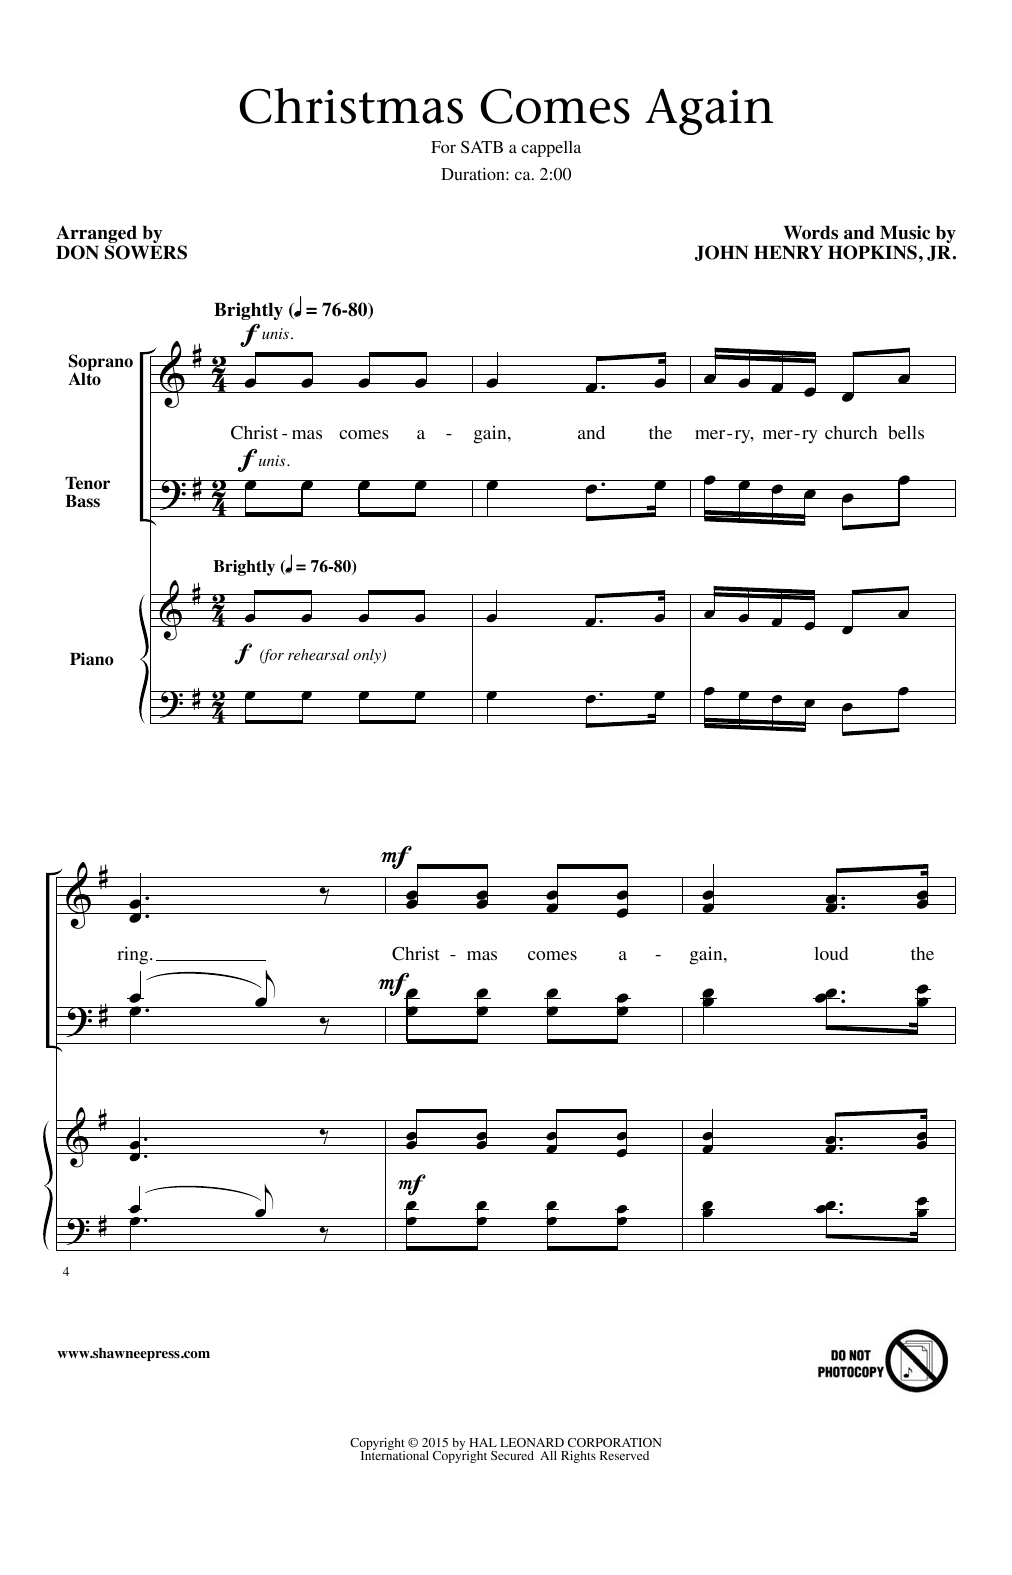 Don Sowers Christmas Comes Again sheet music notes and chords. Download Printable PDF.